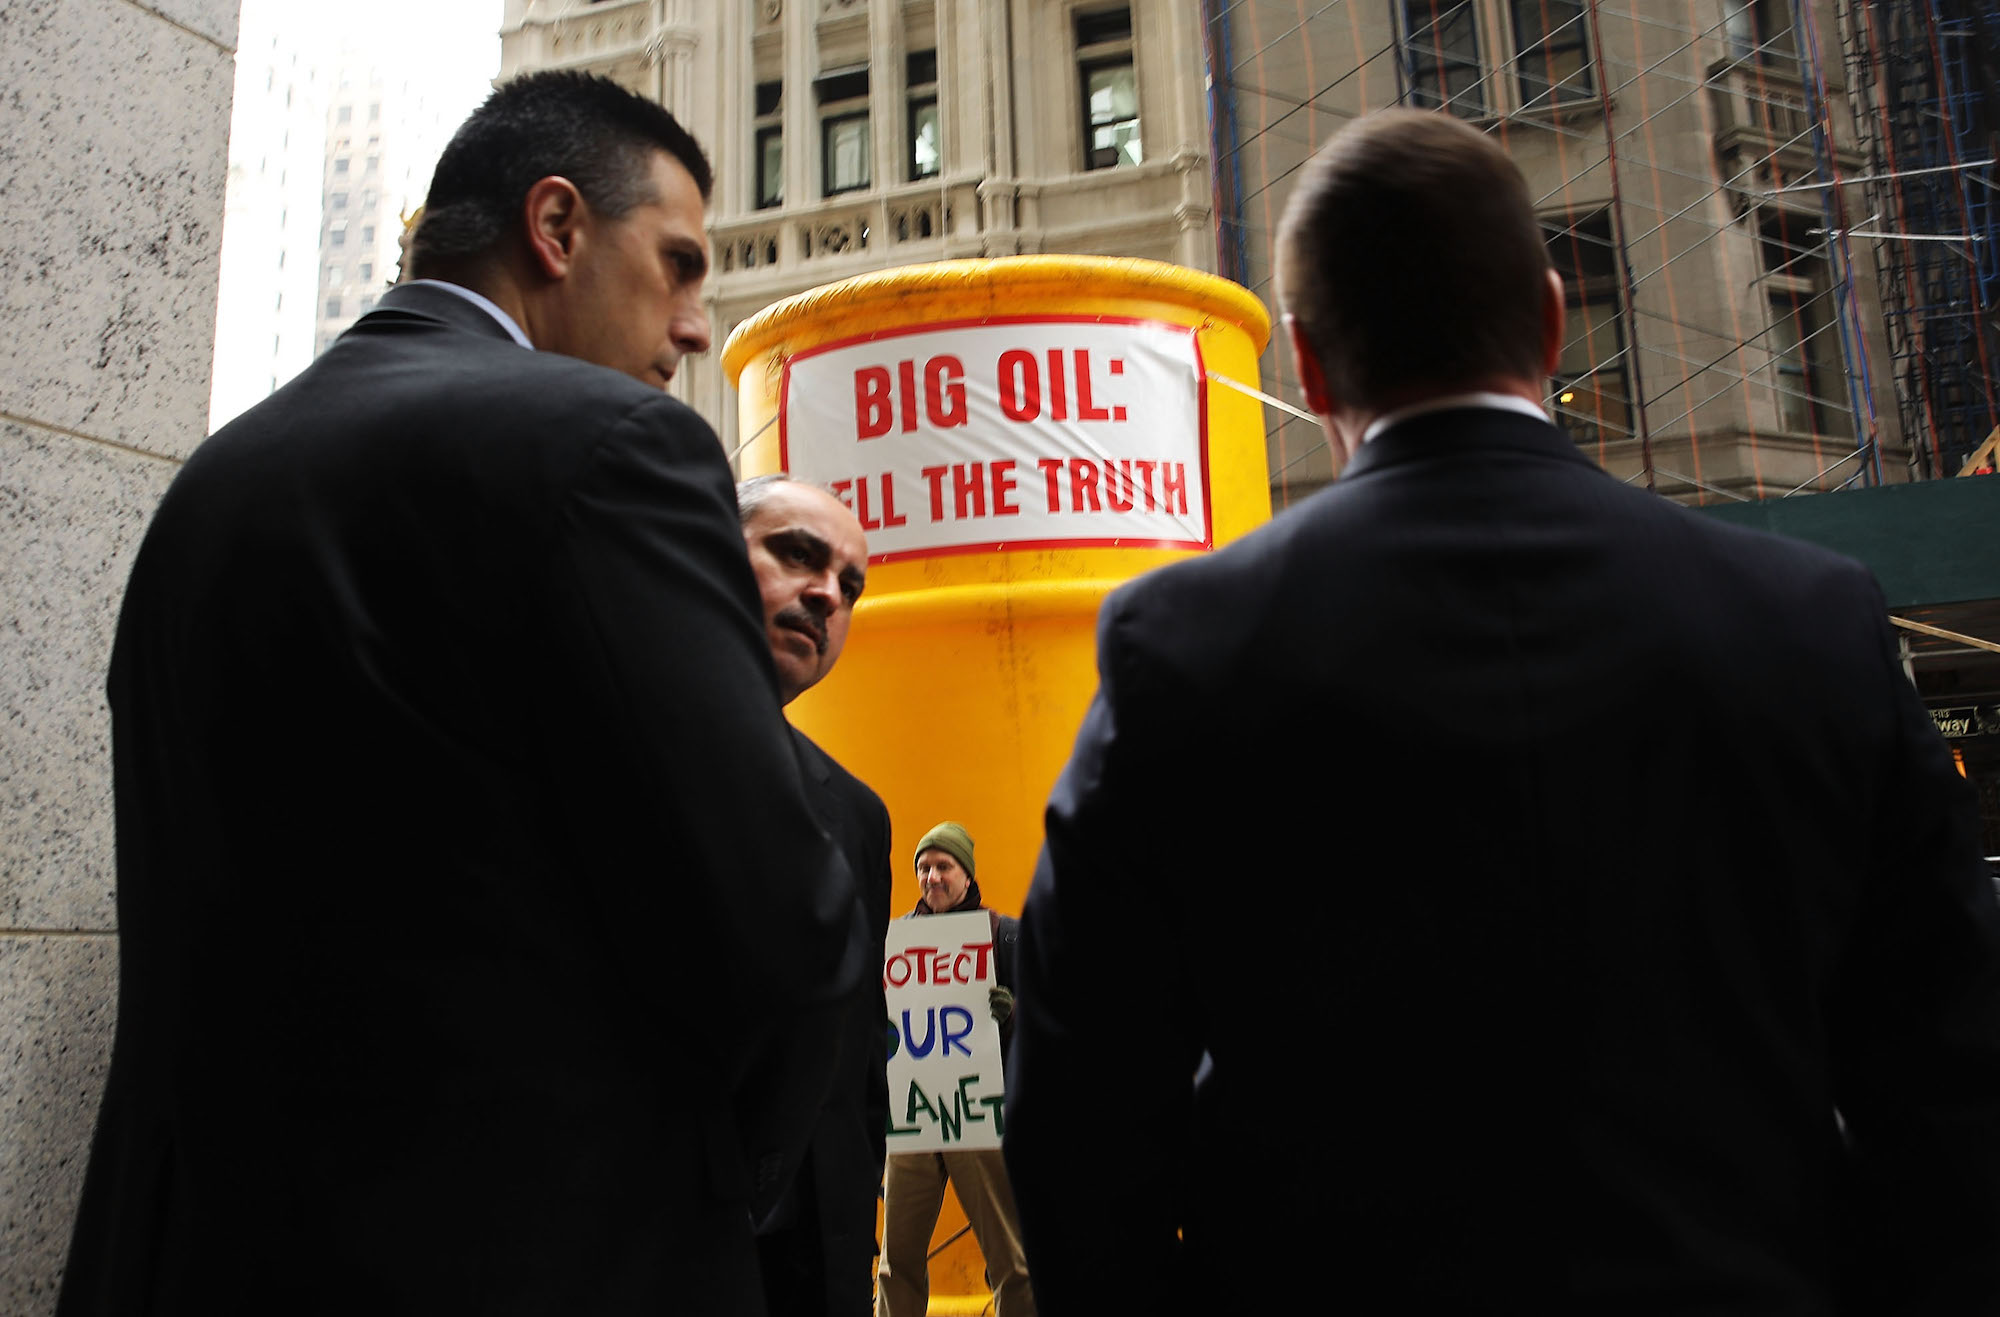 A canary-yellow blow-up stands in front of New York State Attorney General's office. Protestors rally around it, while two security guards watch the scene.